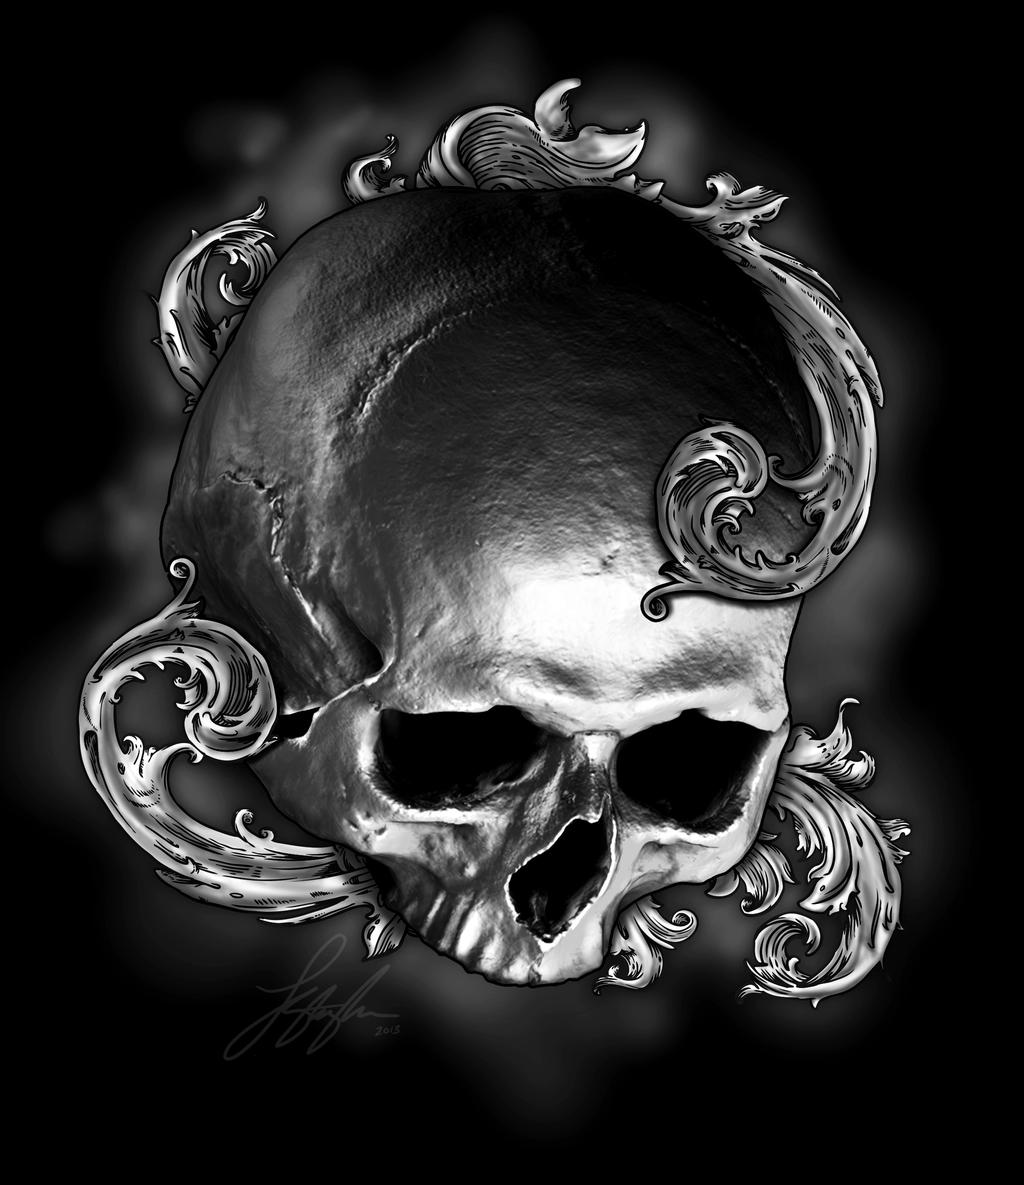 Skulls Tattoo Design Wallpaper: Ornate Skull Tattoo Design By Liquid-venom On DeviantArt